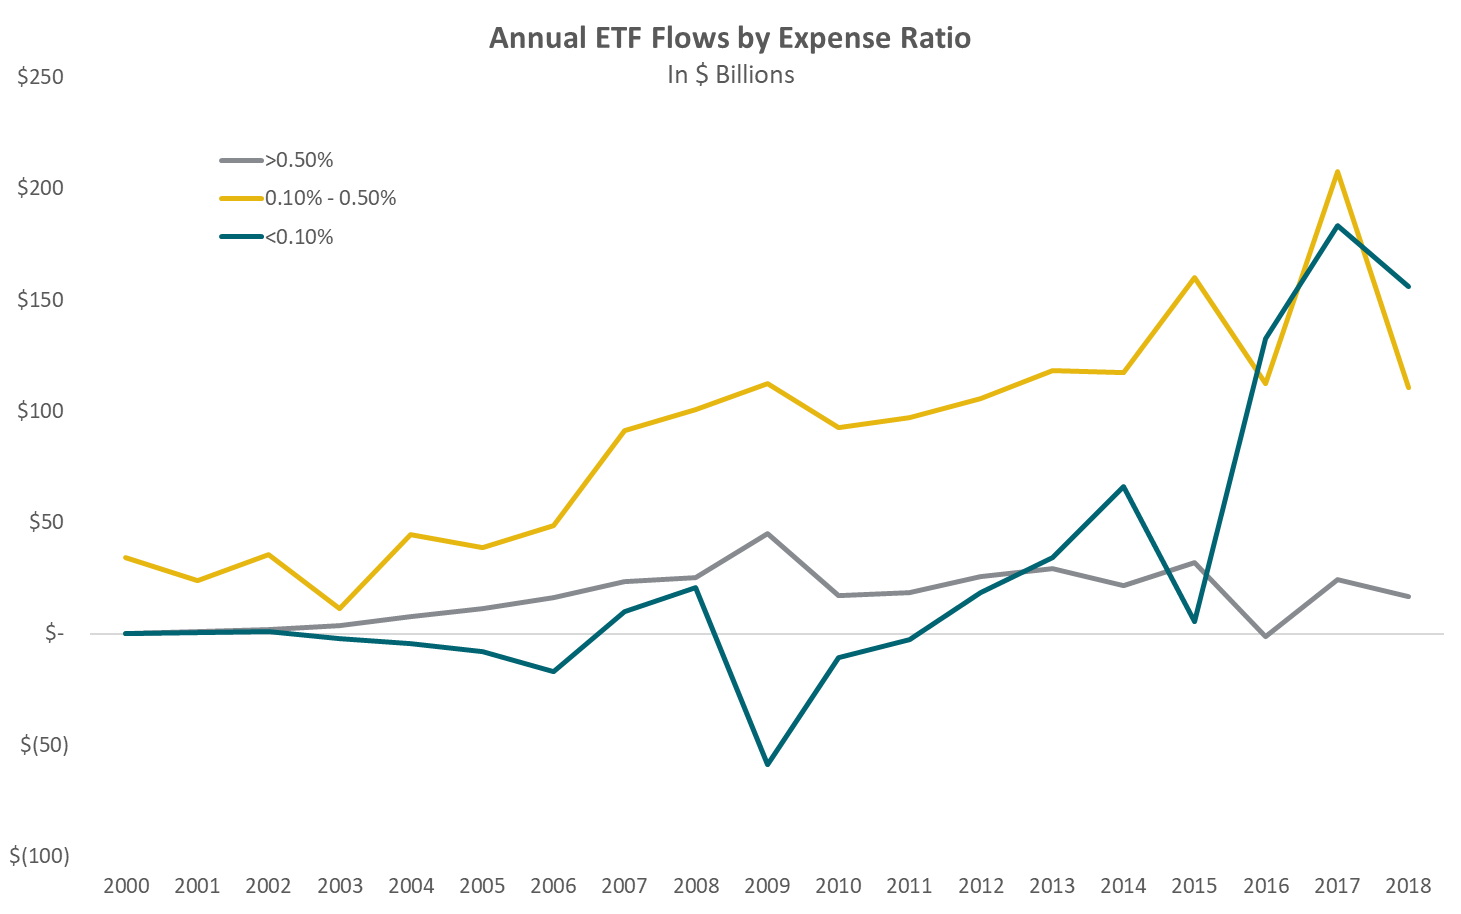 Annual ETF Flows by Expense Ratio